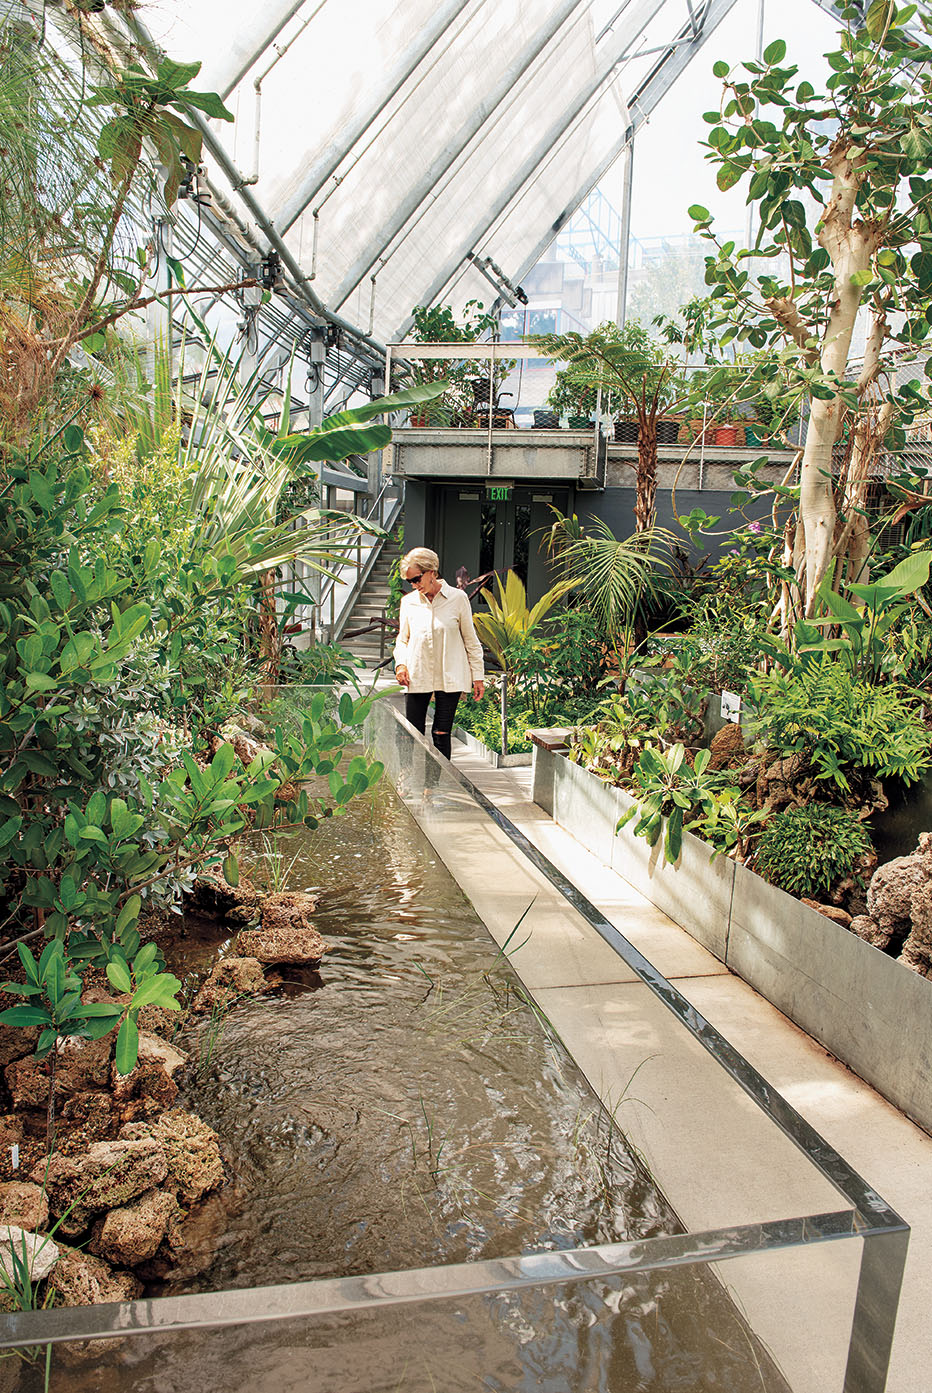 A photo shows a staff member inspecting the mangrove tank in the new conservatory.